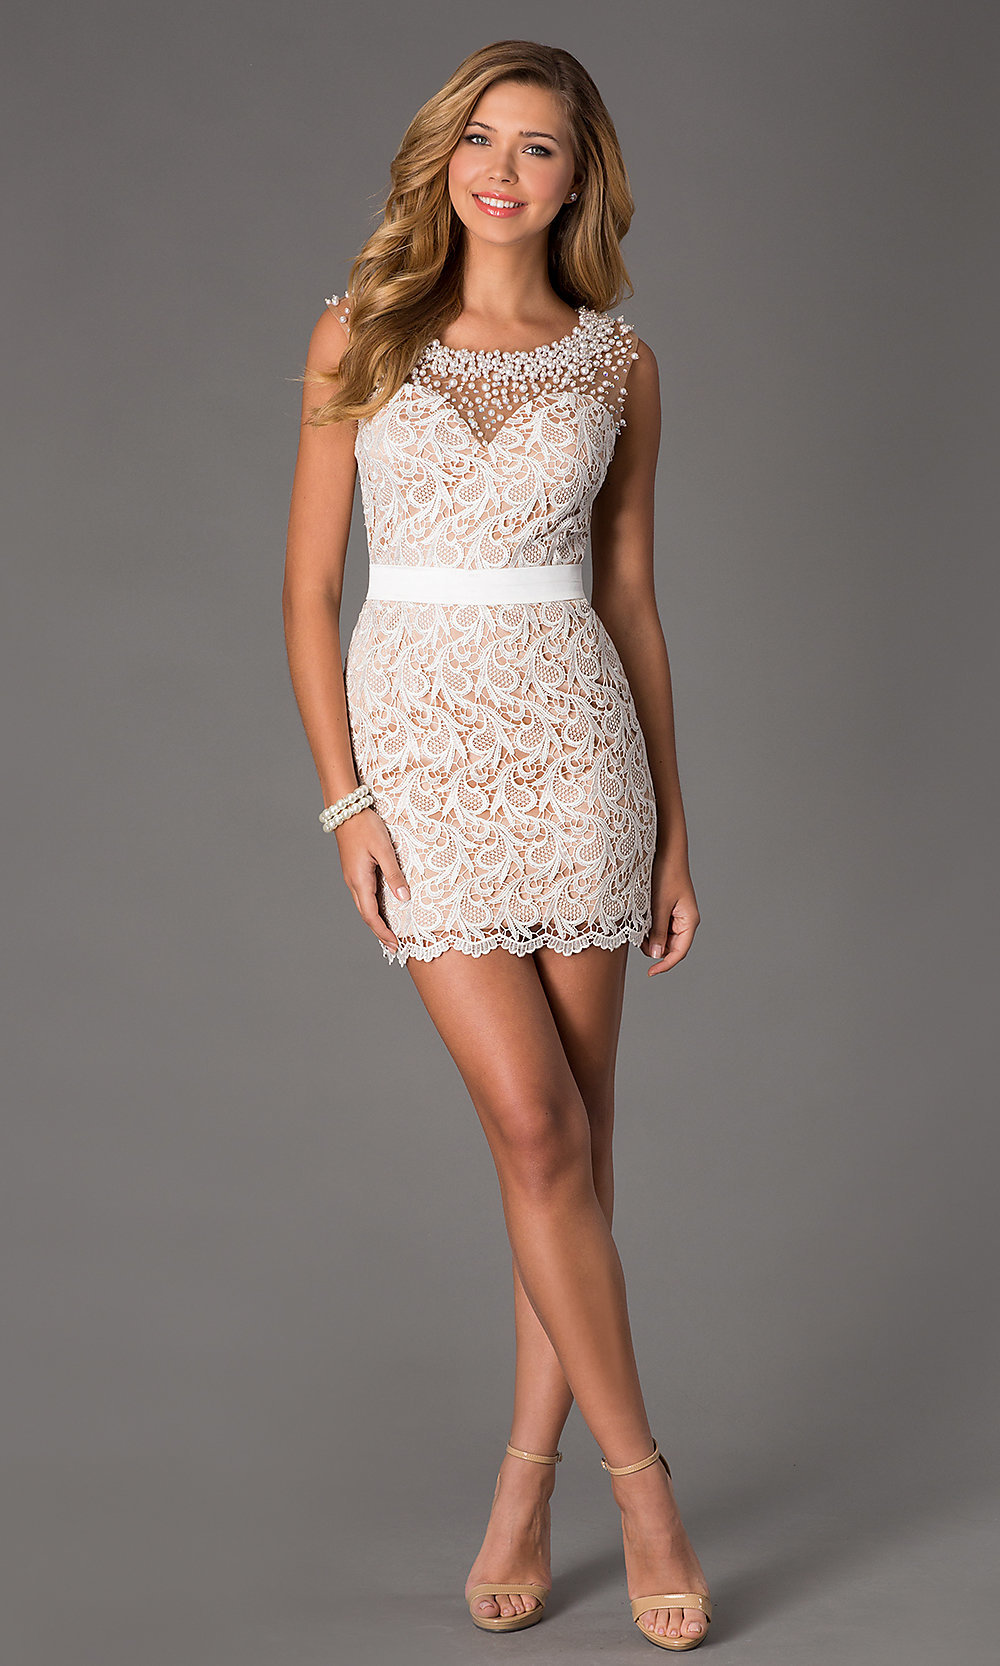 Sleeveless Lace Dress Short Ivory Sleeveless Dress